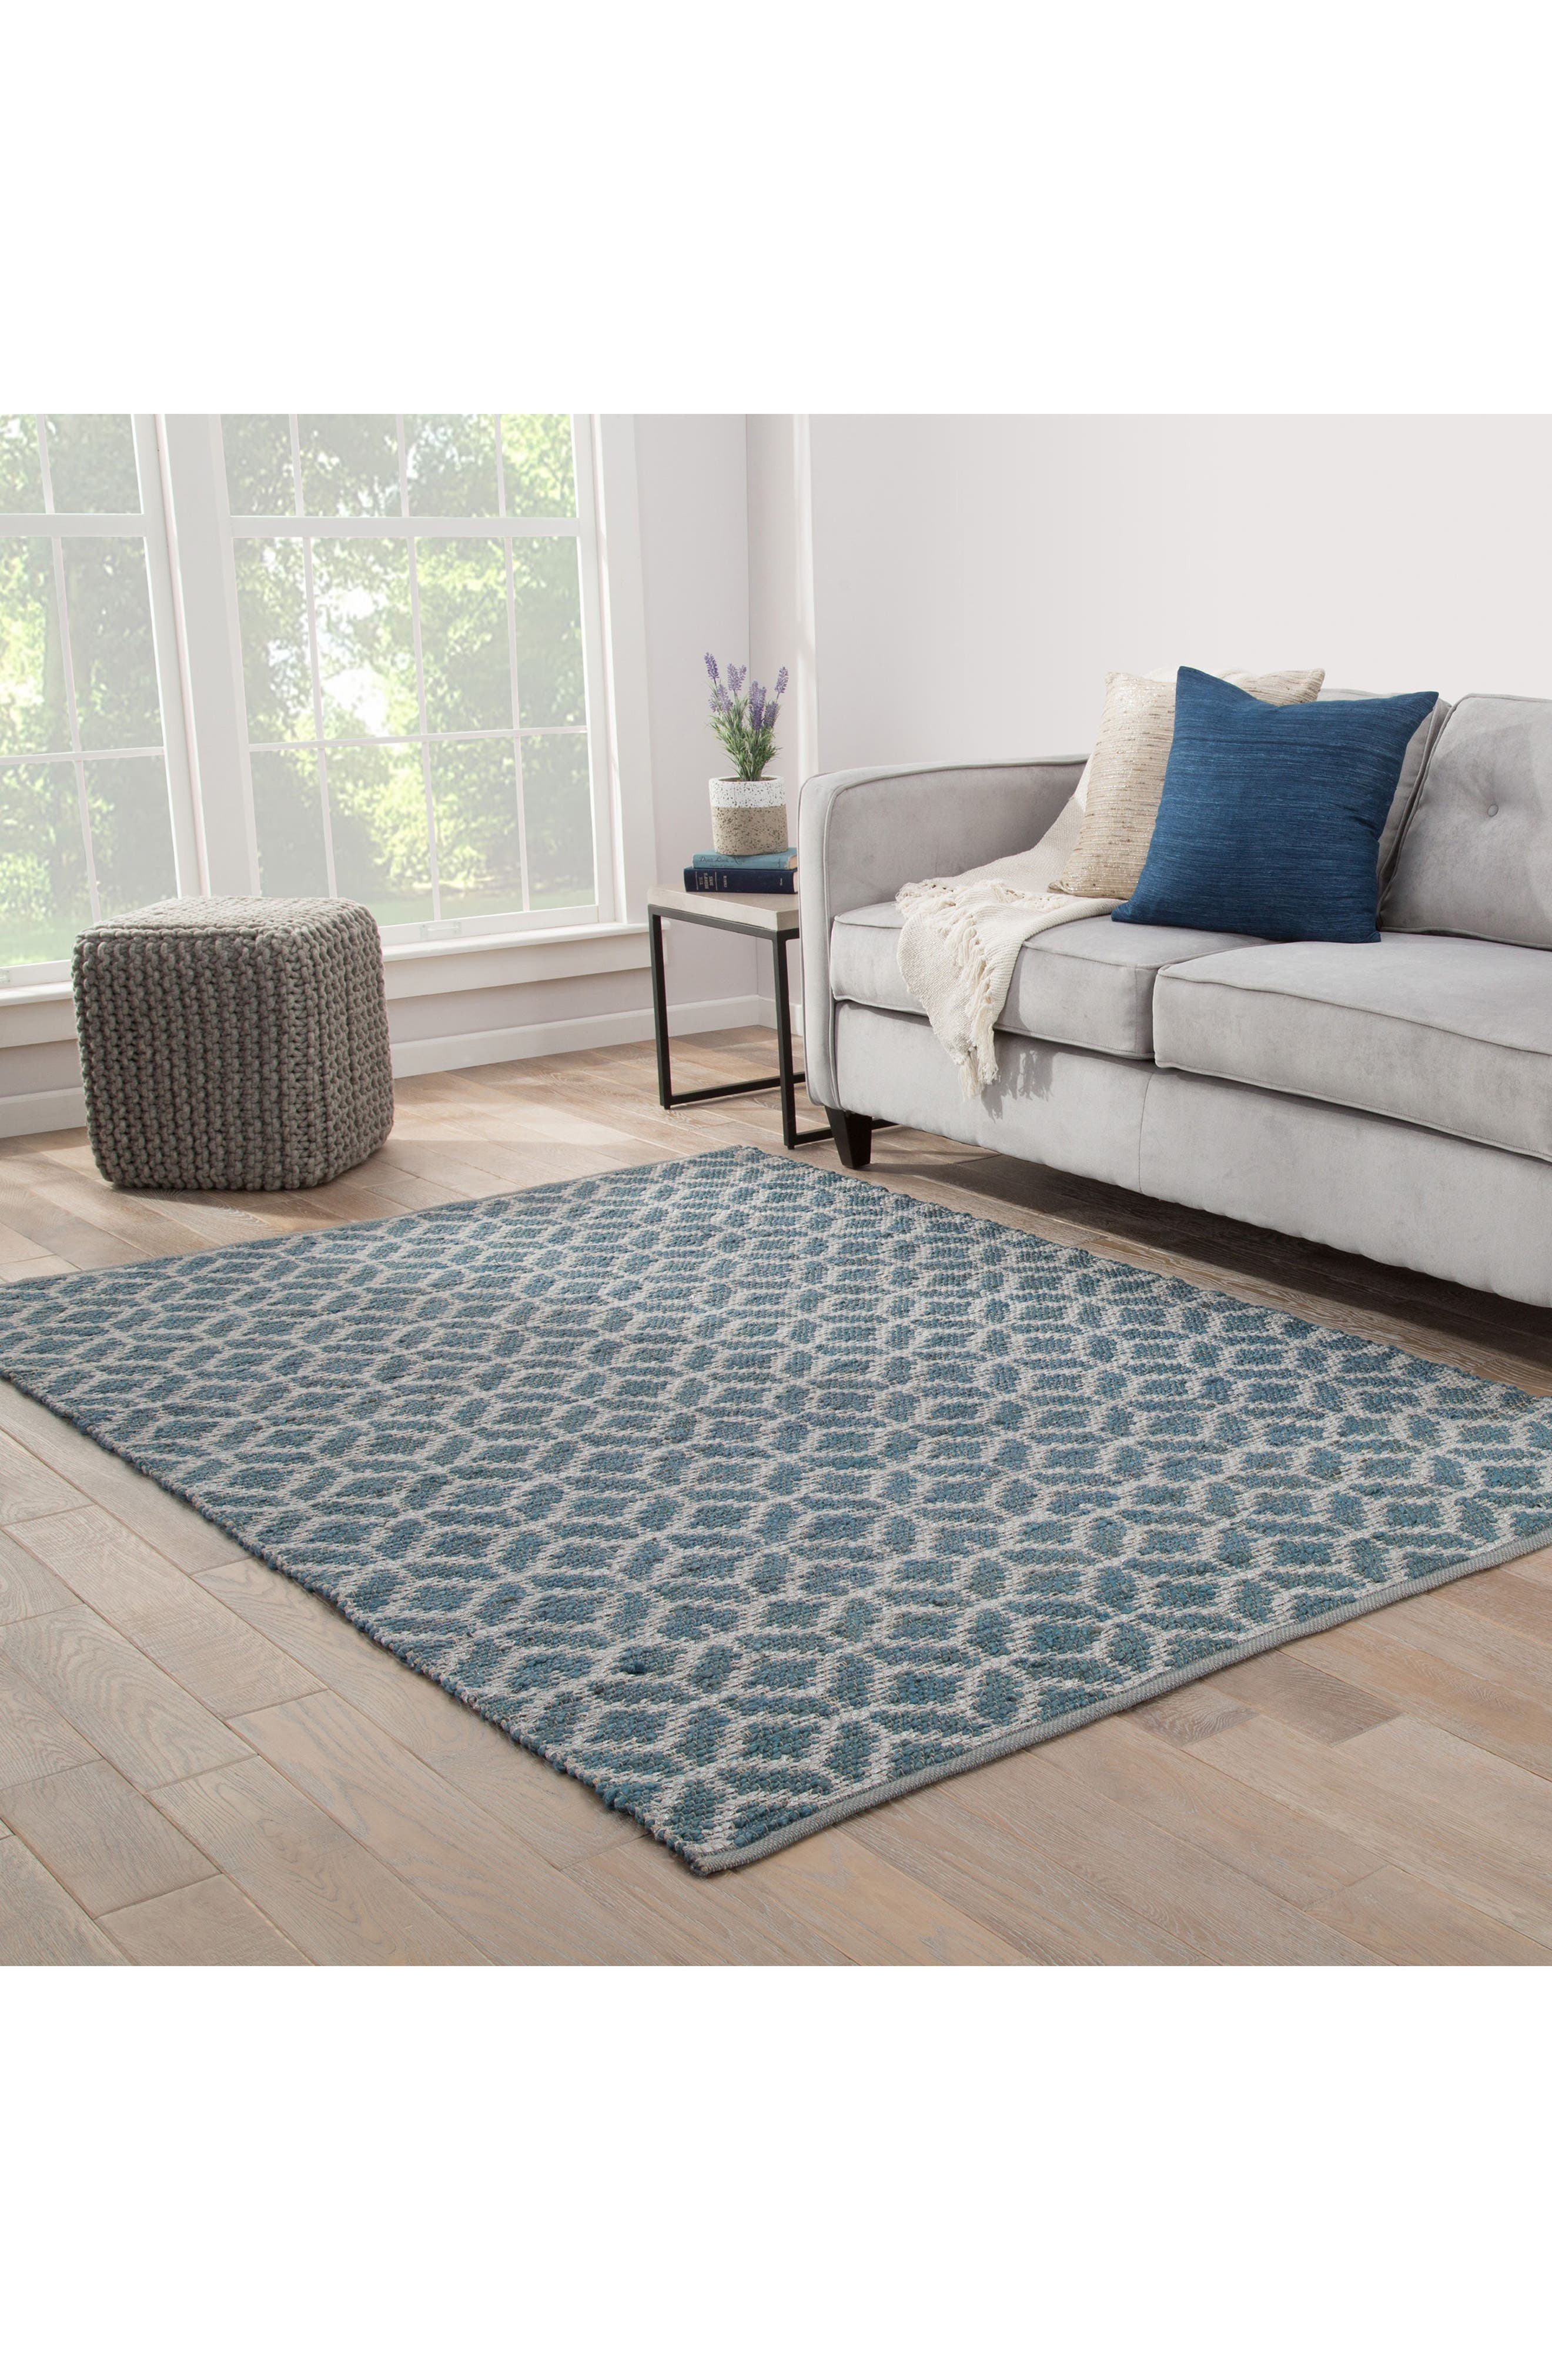 Calm Waters Rug,                             Alternate thumbnail 11, color,                             INDIAN TEAL/ SILVER